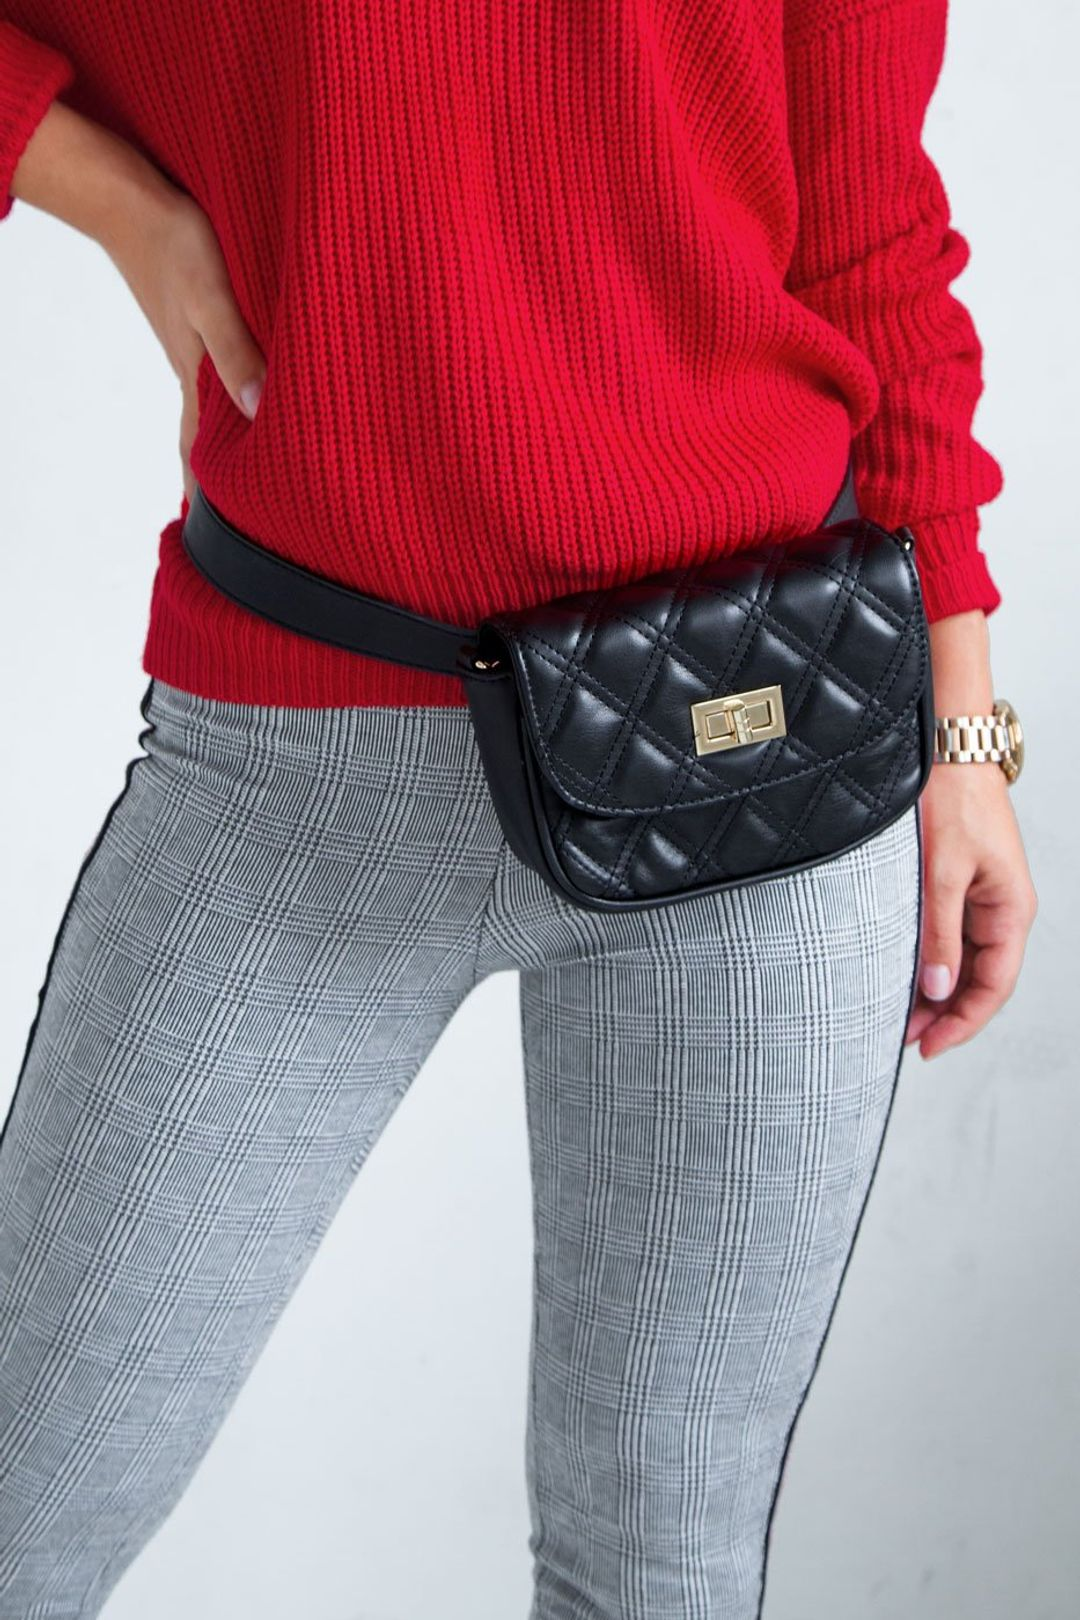 belt-bag-from-Charlies-brand Top 10 Latest Bag Trends Expected to Boom in 2021/2022